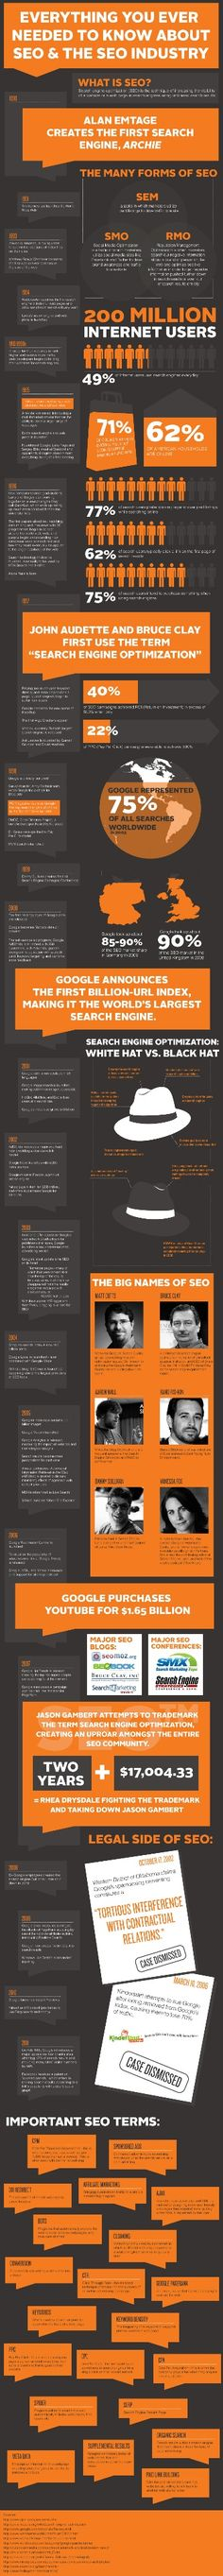 What Is SEO - Search Engine Optimization and What Do I Need To Know? #infographic